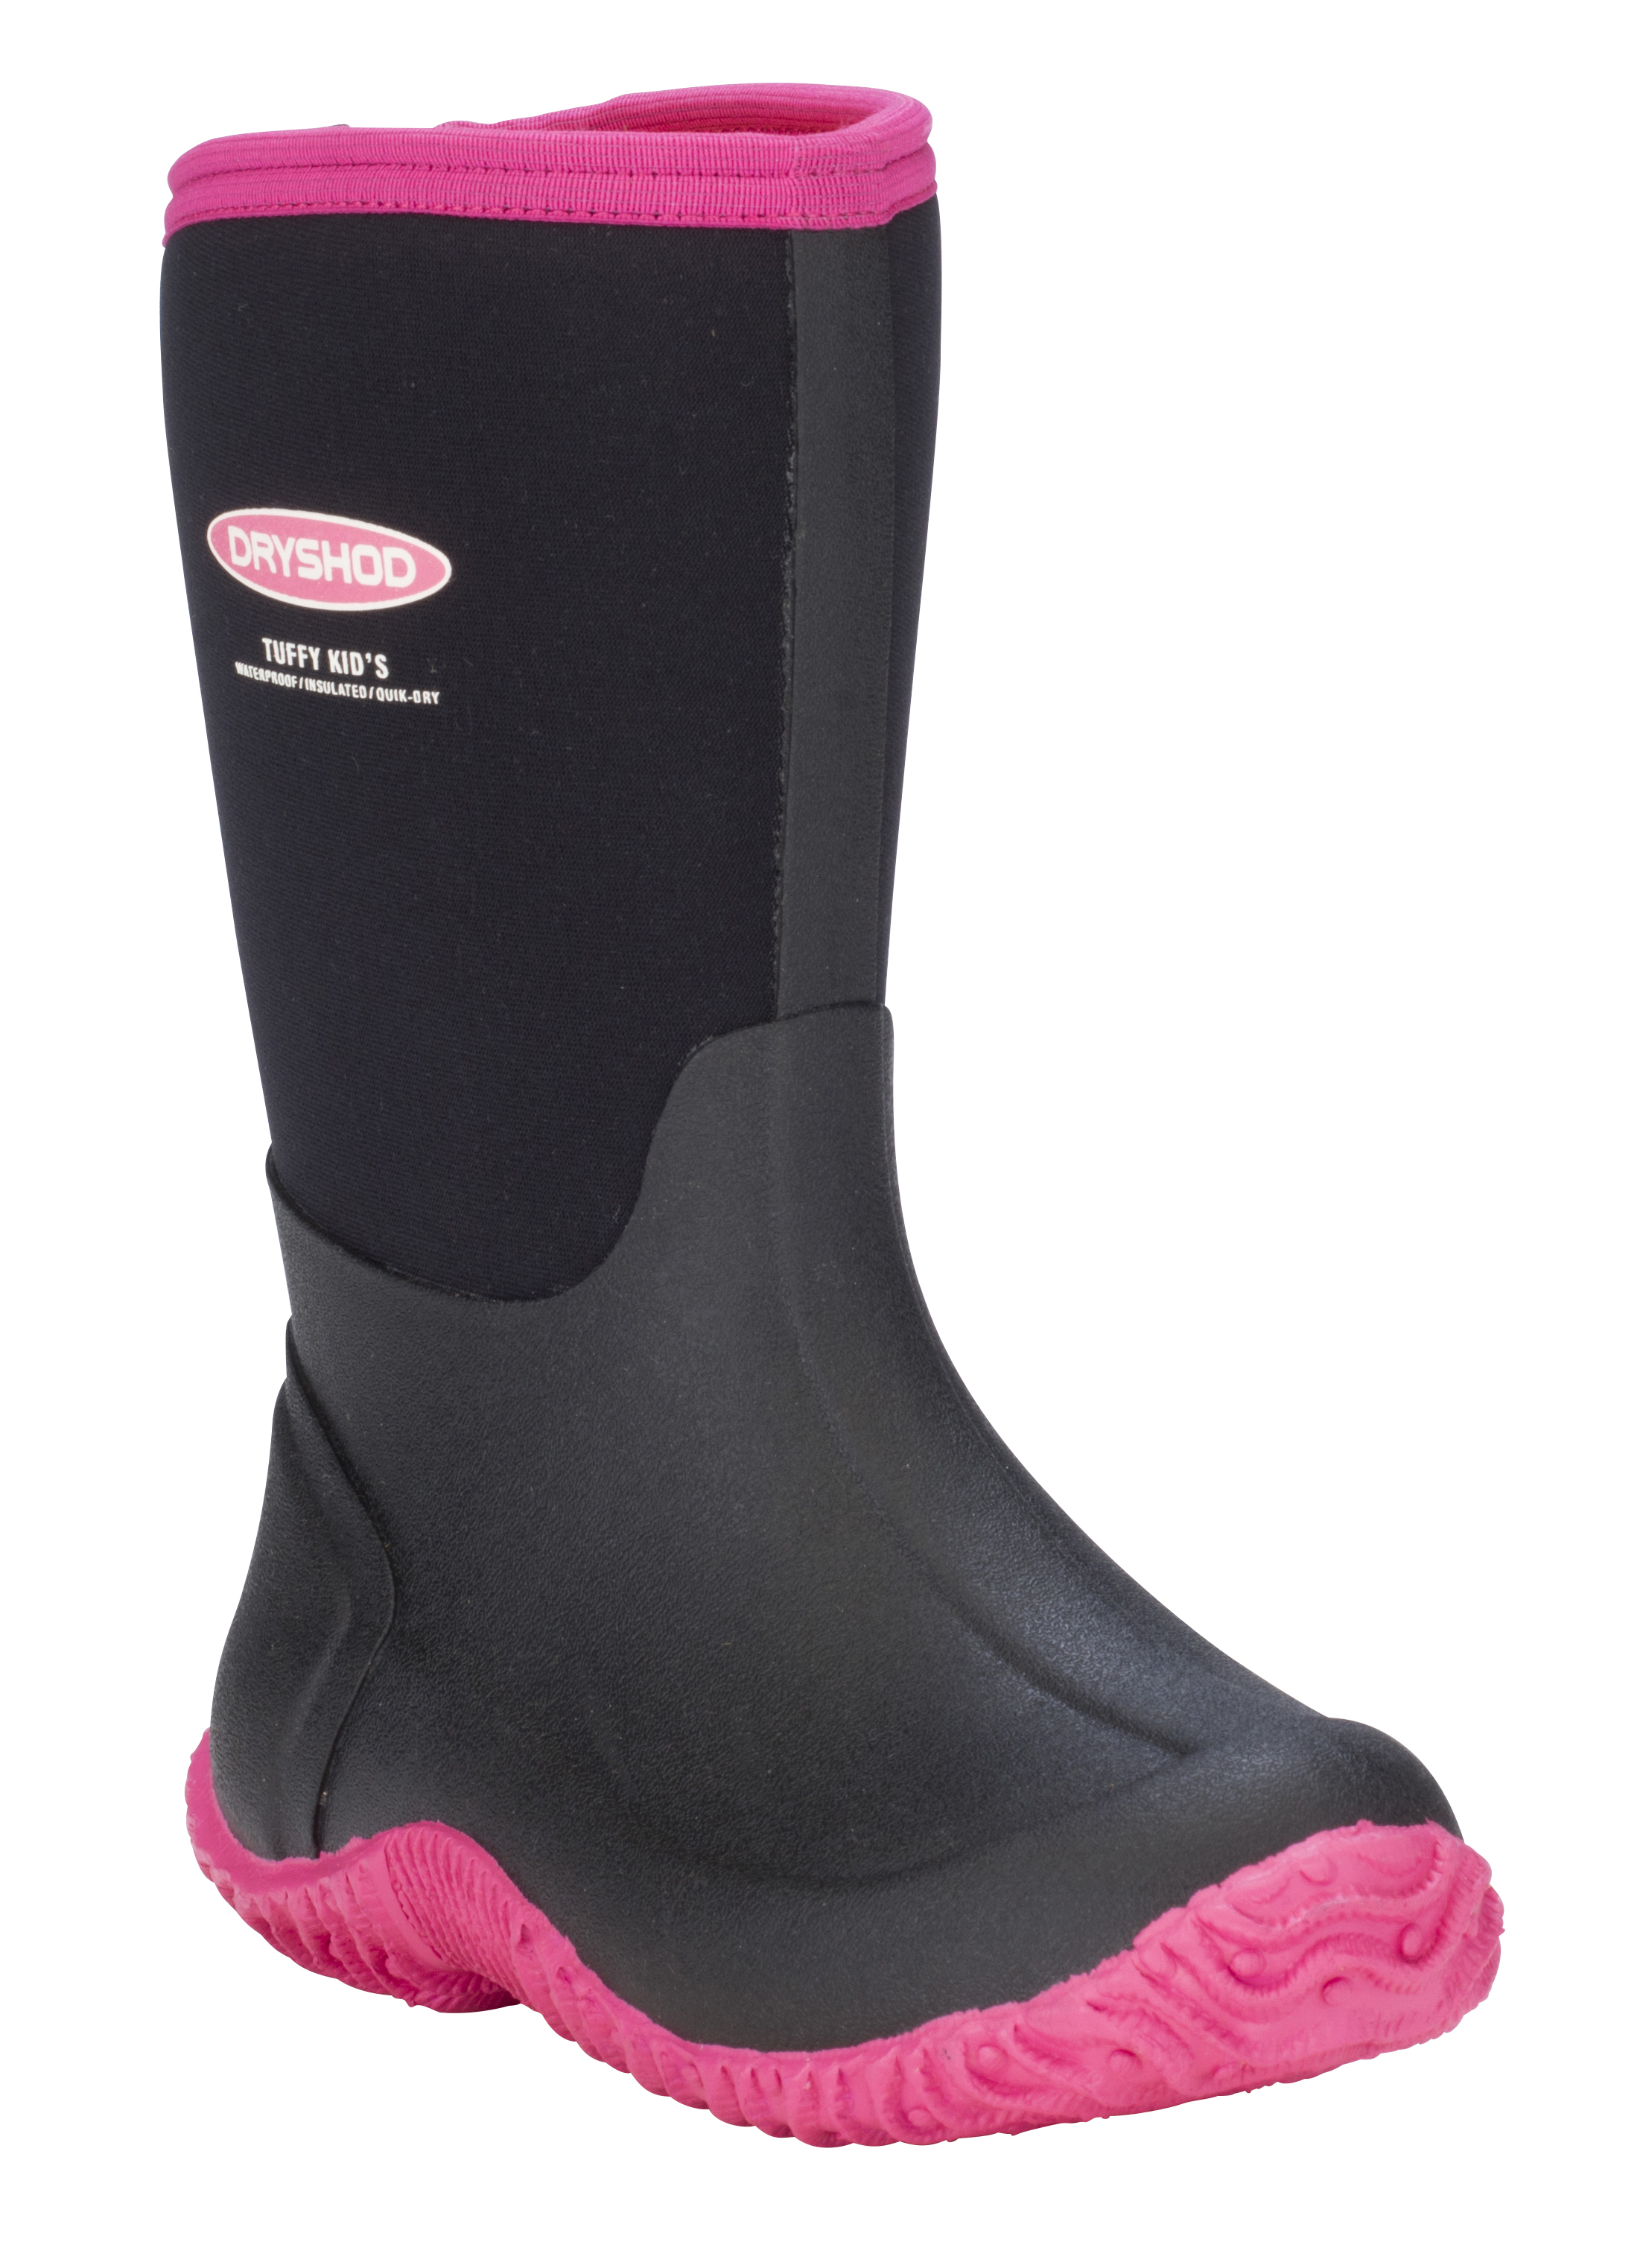 Dryshod Kids' Tuffy All Season Sport Boots - Mid/Hi Cut - Size C12, Black/Pink